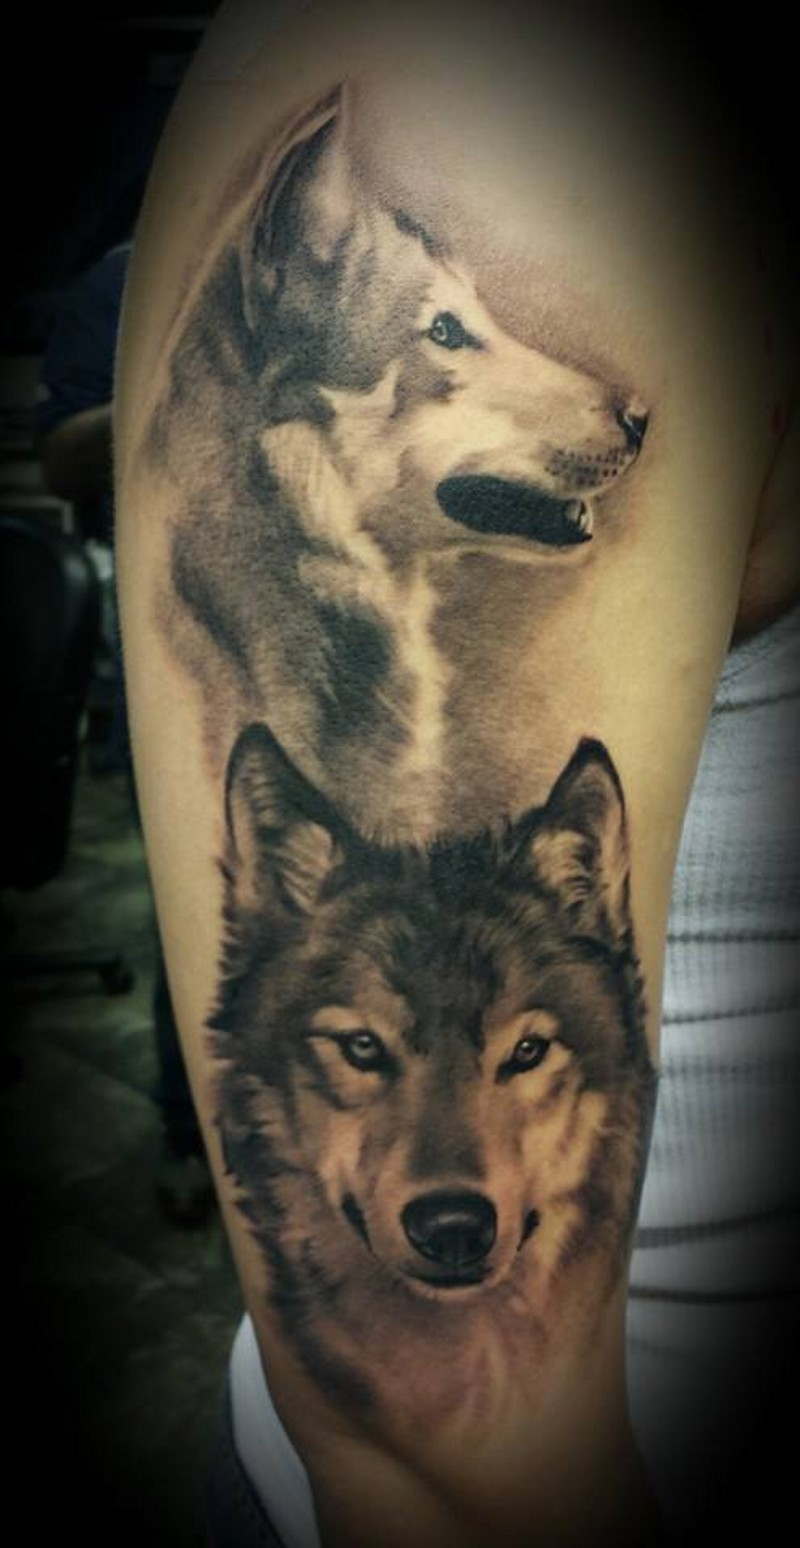 Indian with eagle and wolf tattoo on shoulder tattooimages biz - Watercolor Portrait Of Two Of Wolves Tattoo On Shoulder